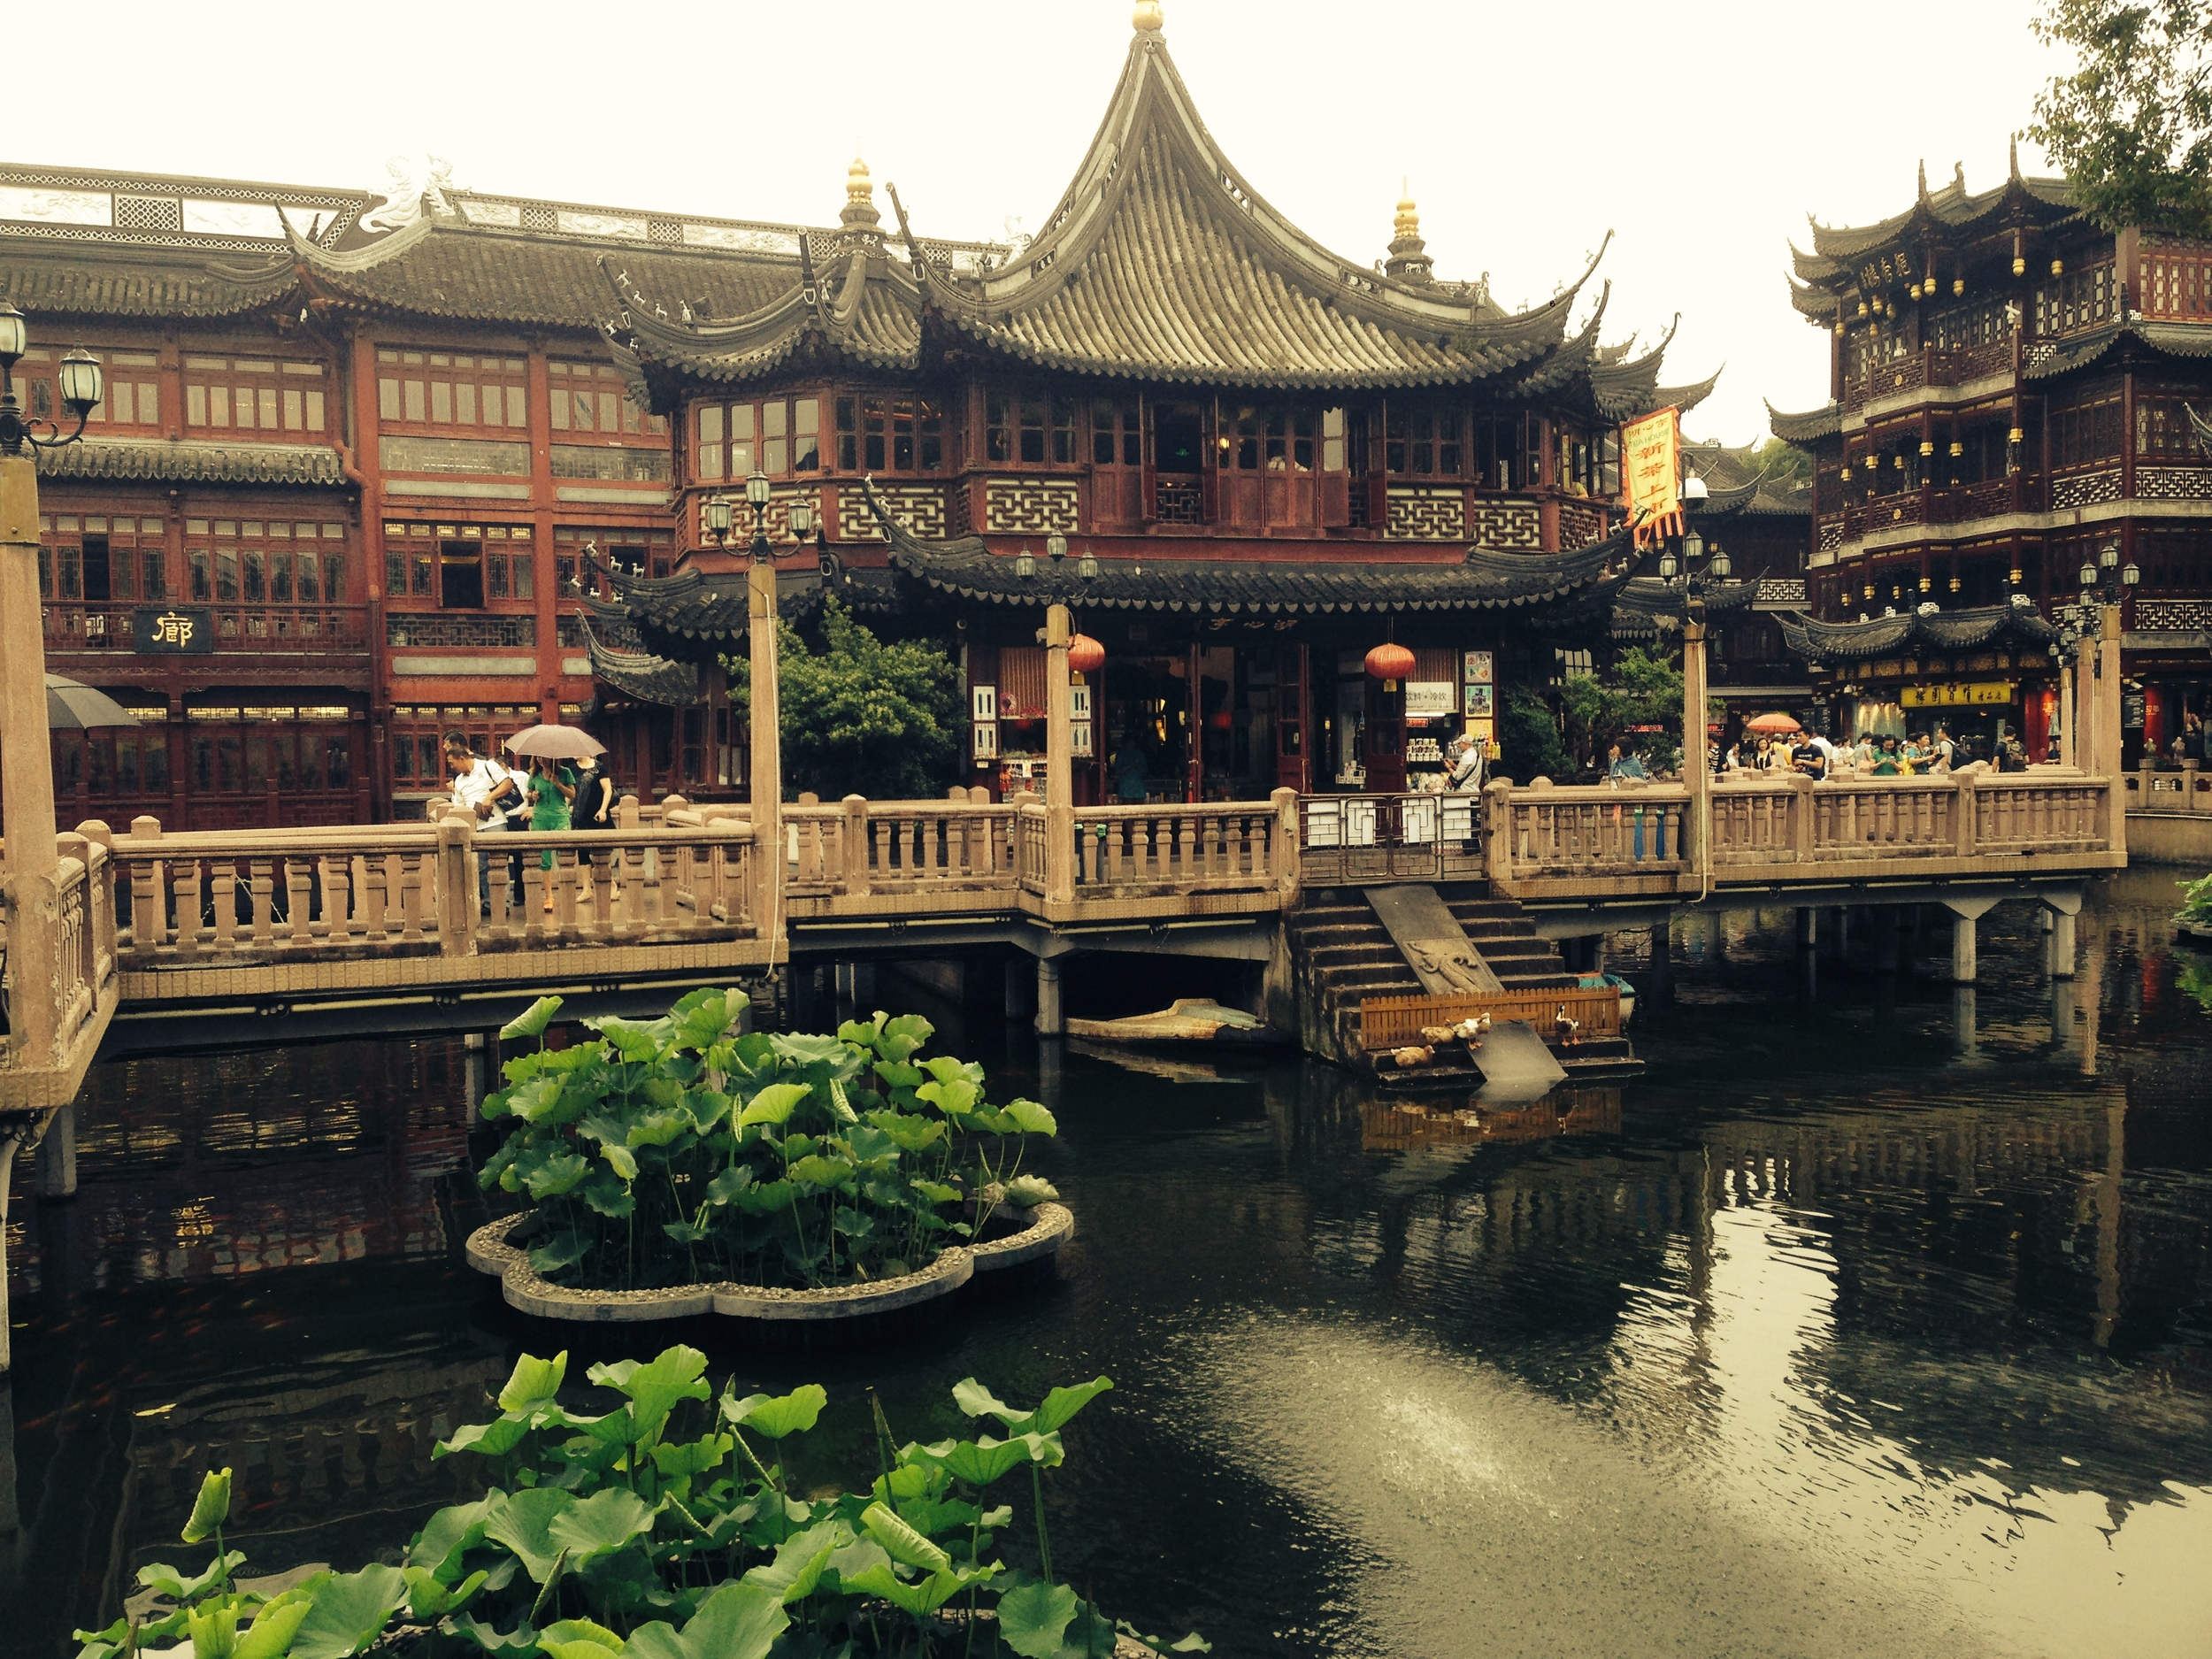 The famous Yu Yuan Garden Tea House in the center of Shanghai.